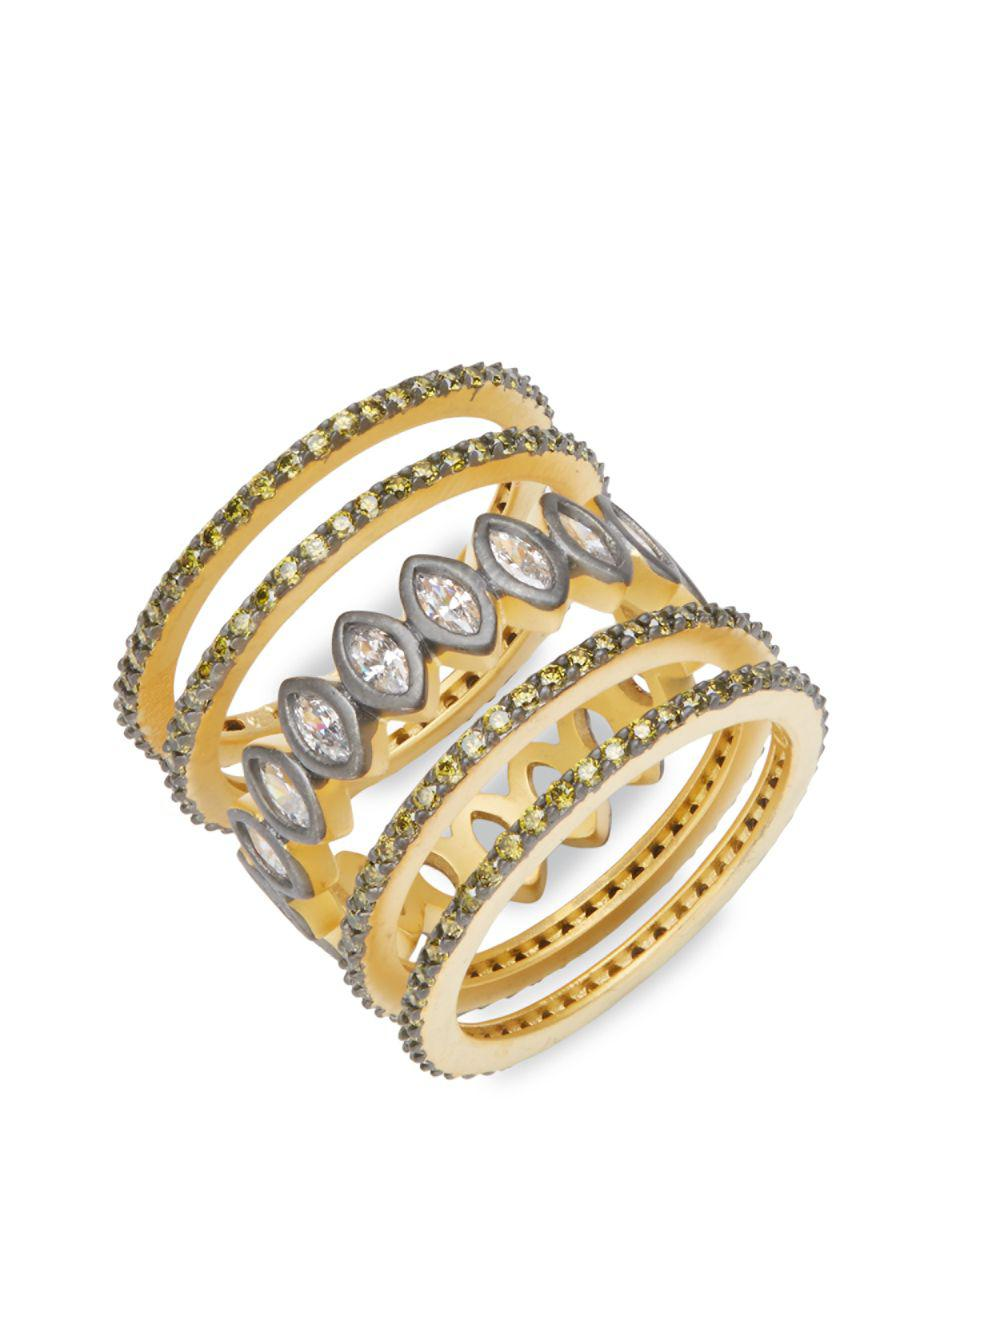 Lyst - Freida rothman Contemporary Deco Cubic Zirconia And Sterling ...